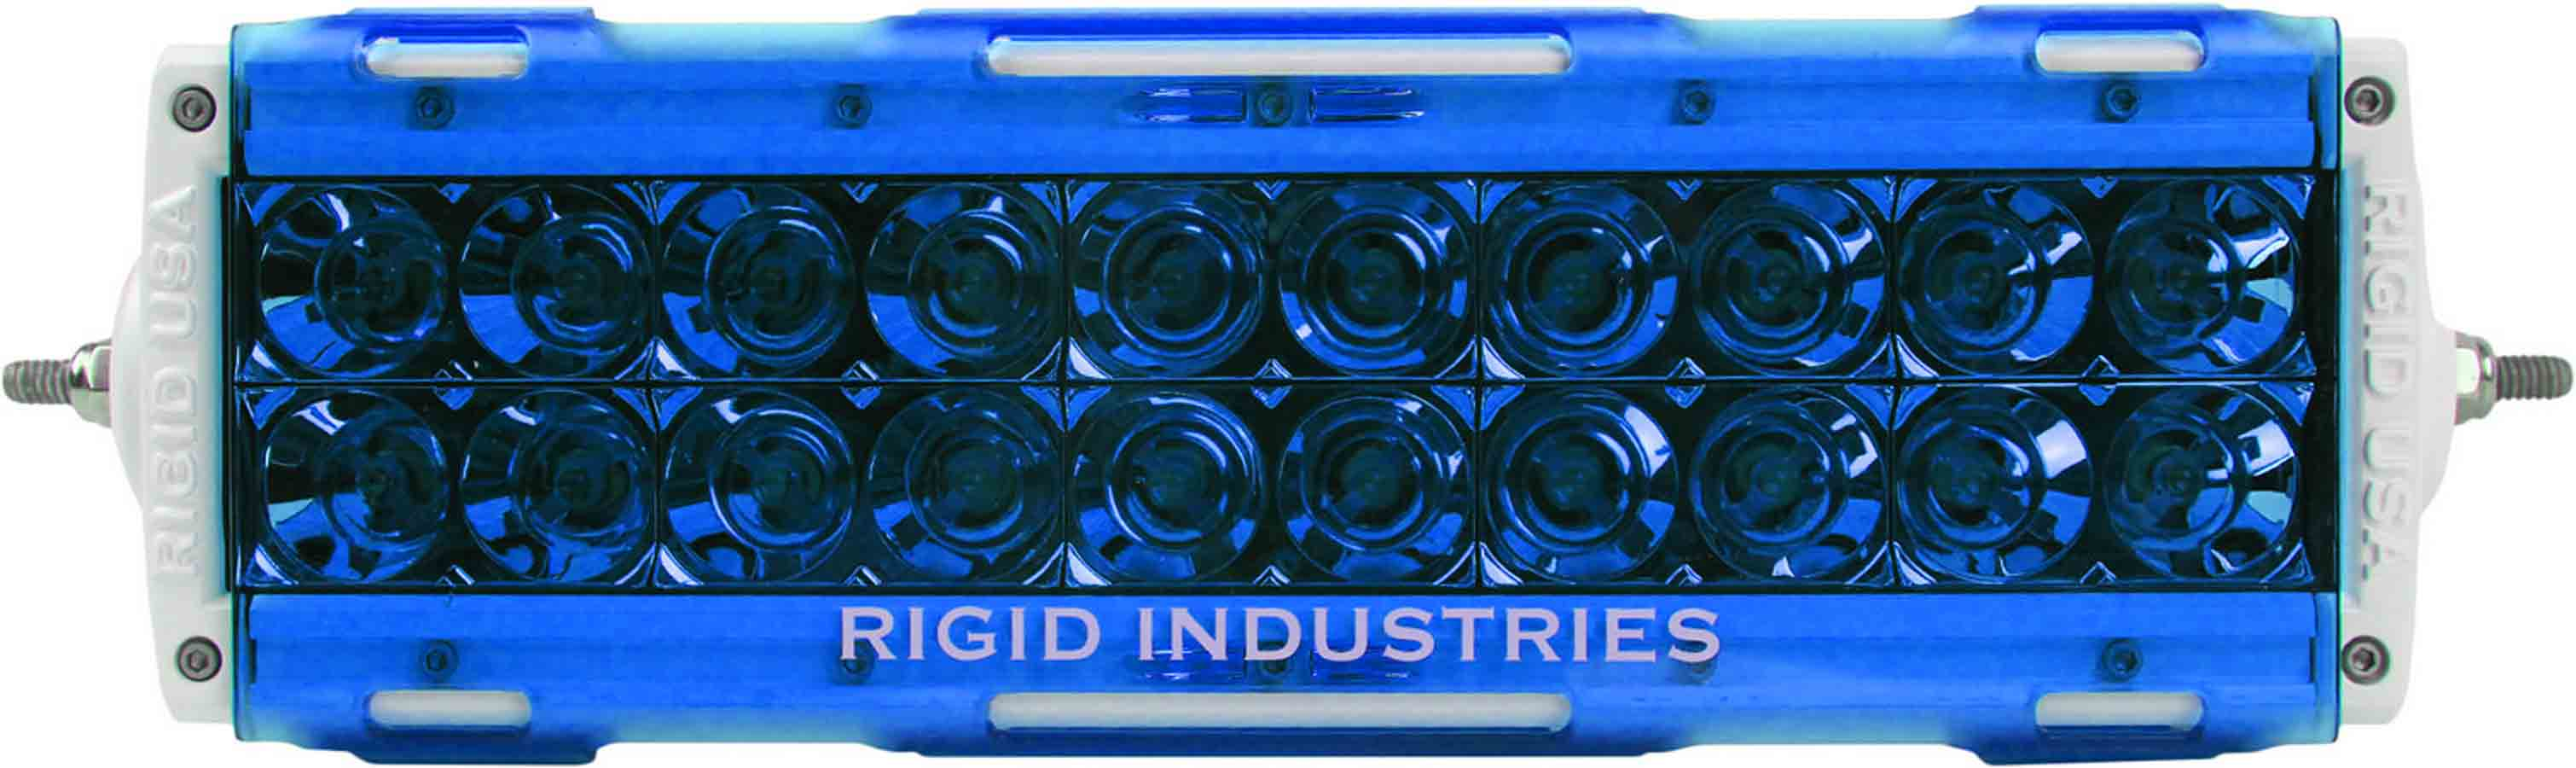 LED Light Cover Each 10 in E Series Blue